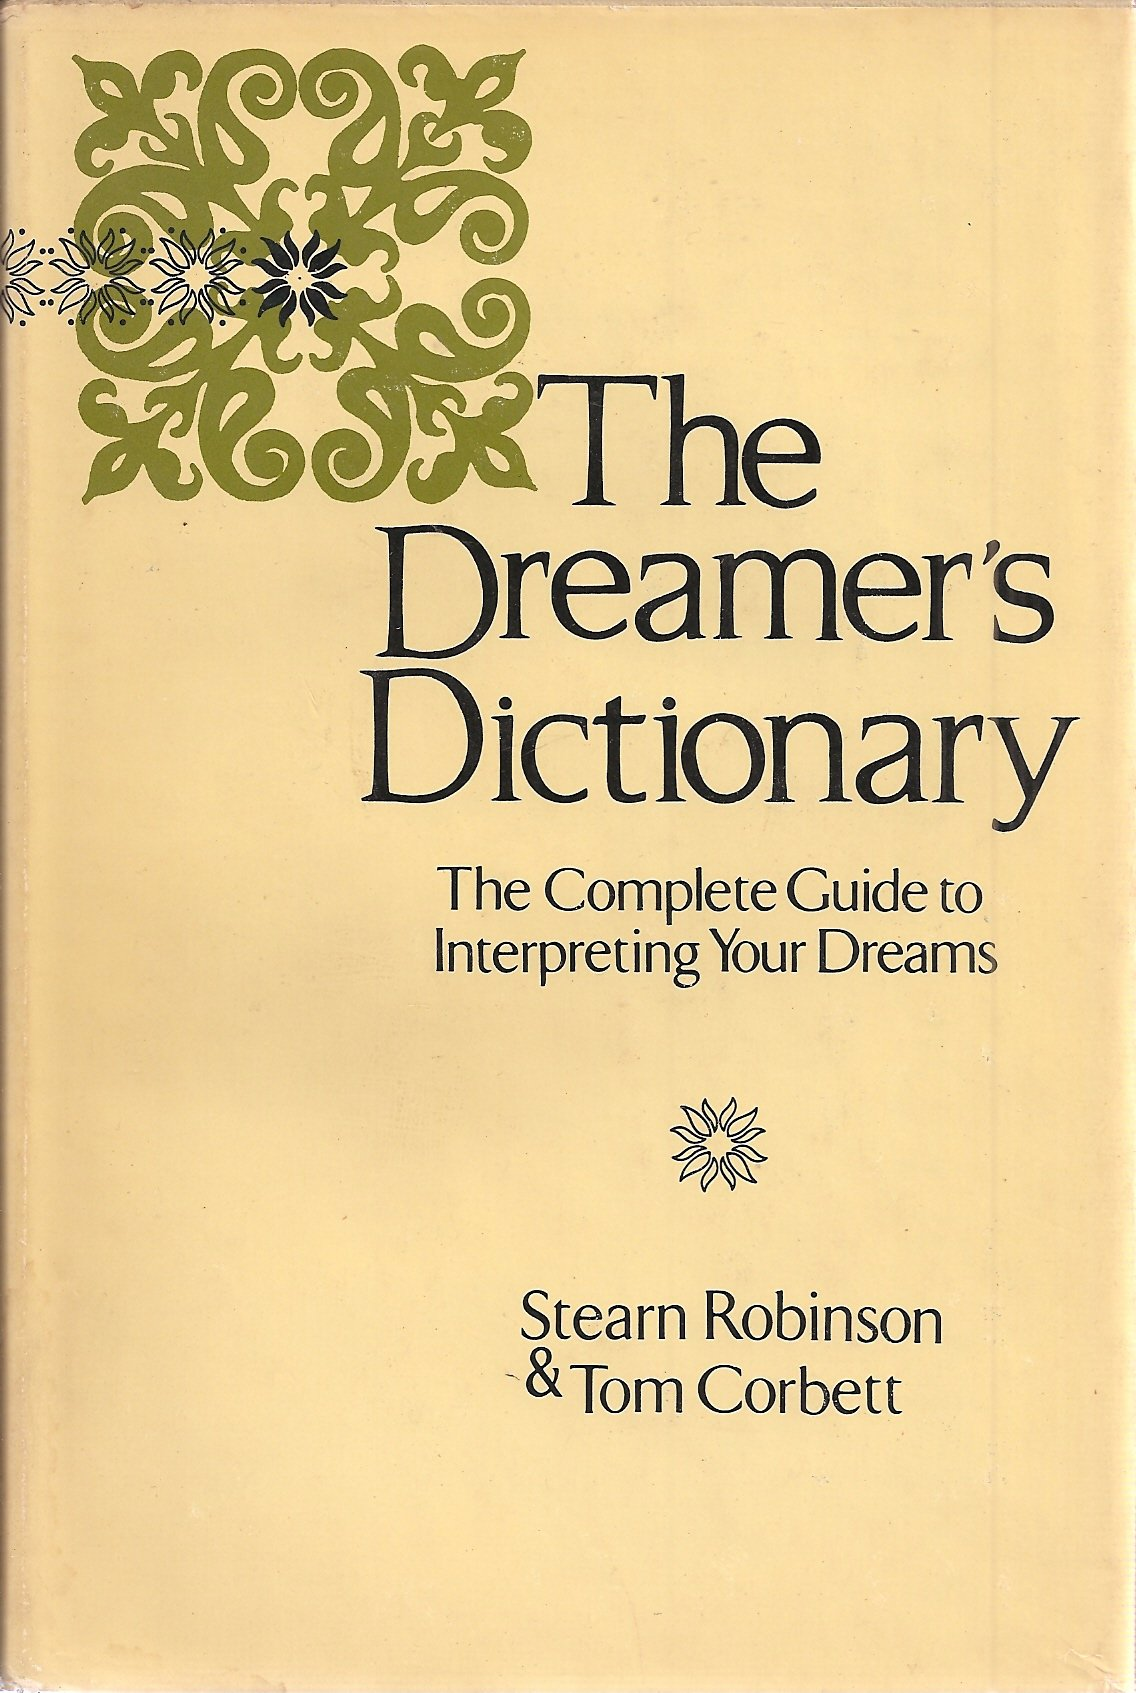 The dreamers dictionary stearn robinson amazon books buycottarizona Images